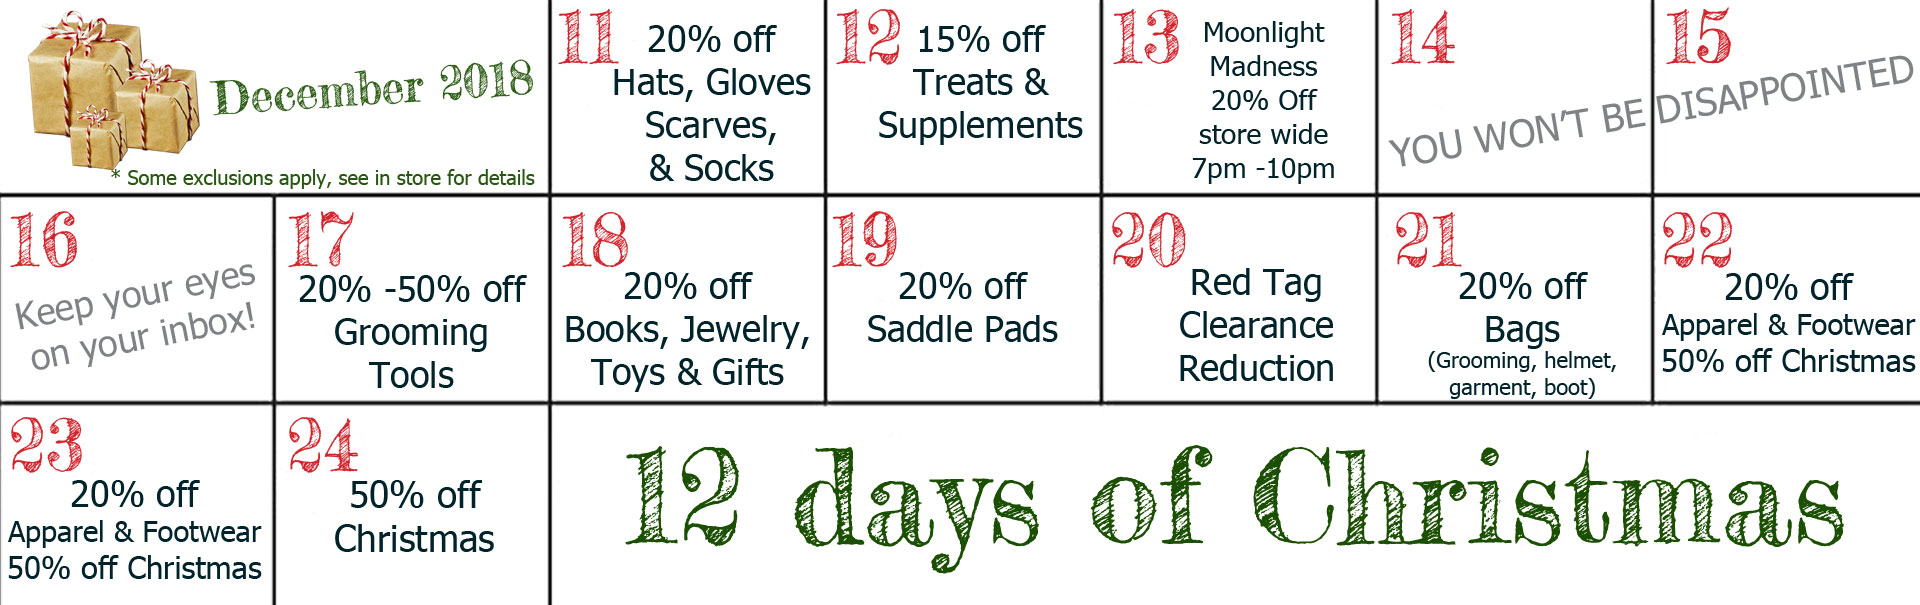 12 Days of Christmas Promotion